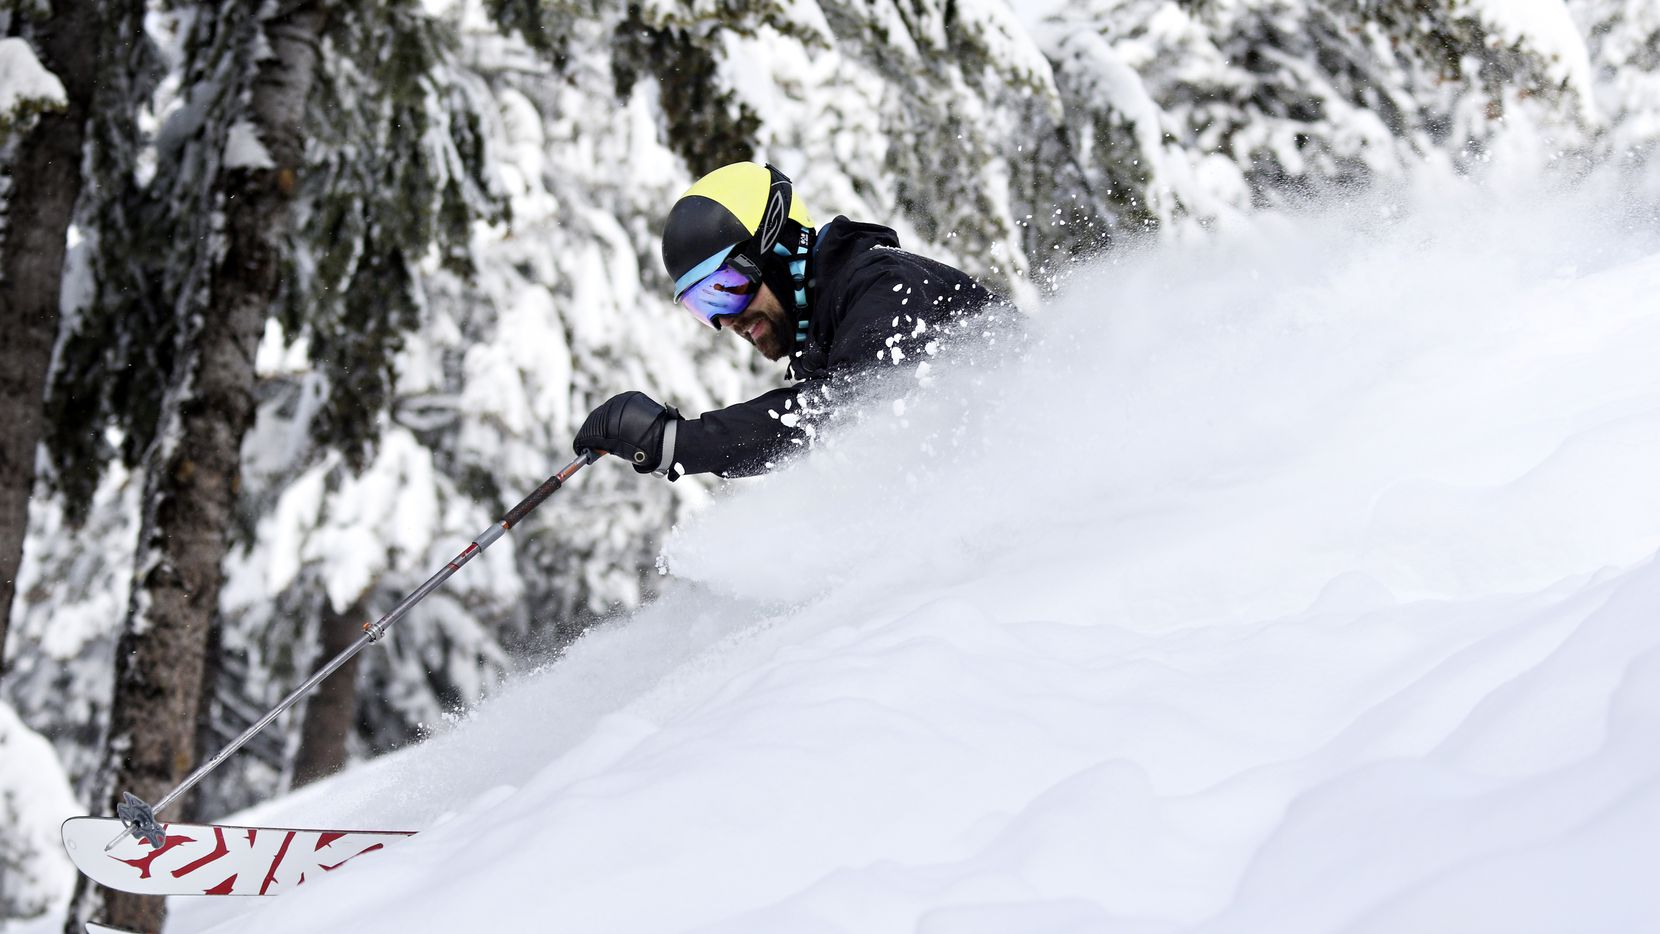 """Ski Magazine"" said Turner Mountain might have ""the best lift-assisted powder skiing in the U.S."""